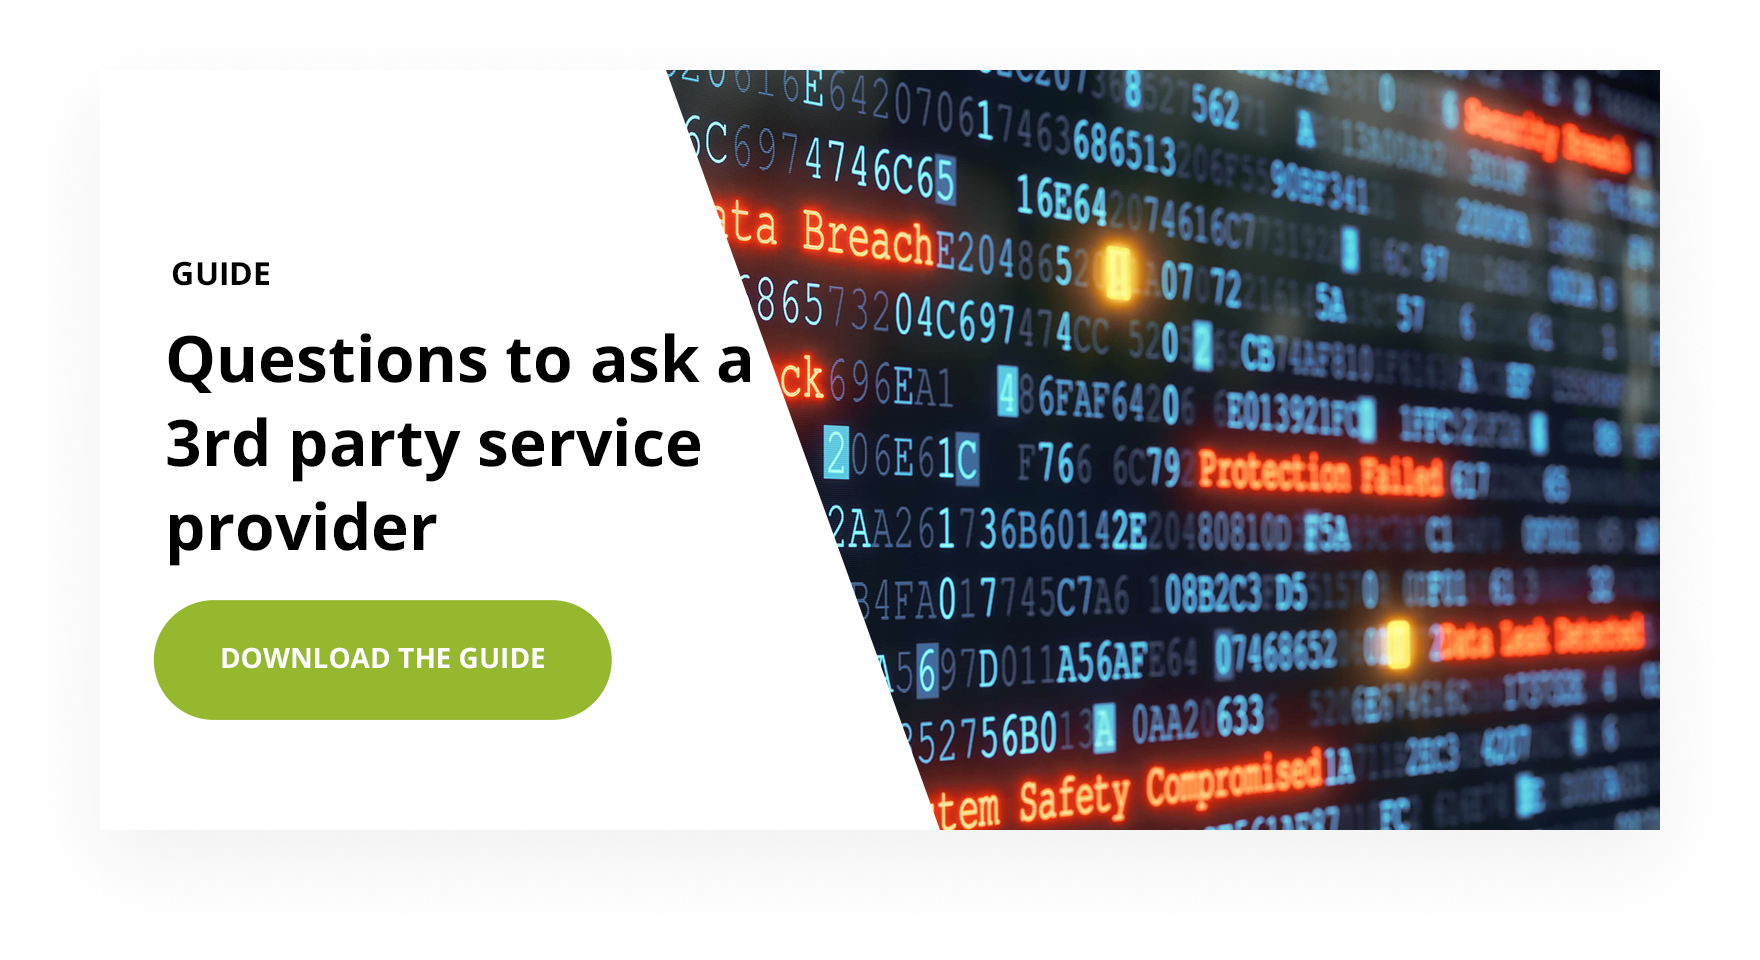 Guide questions to ask a 3rd party service provider